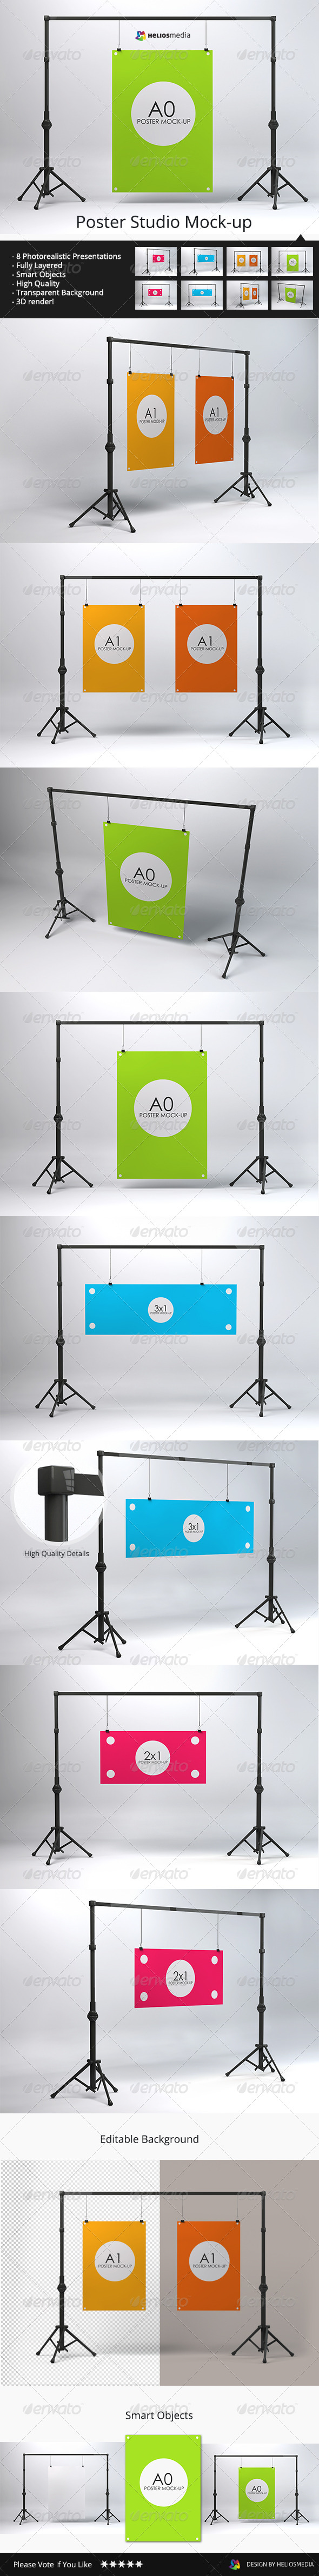 GraphicRiver Poster Studio Mock-up 7390975